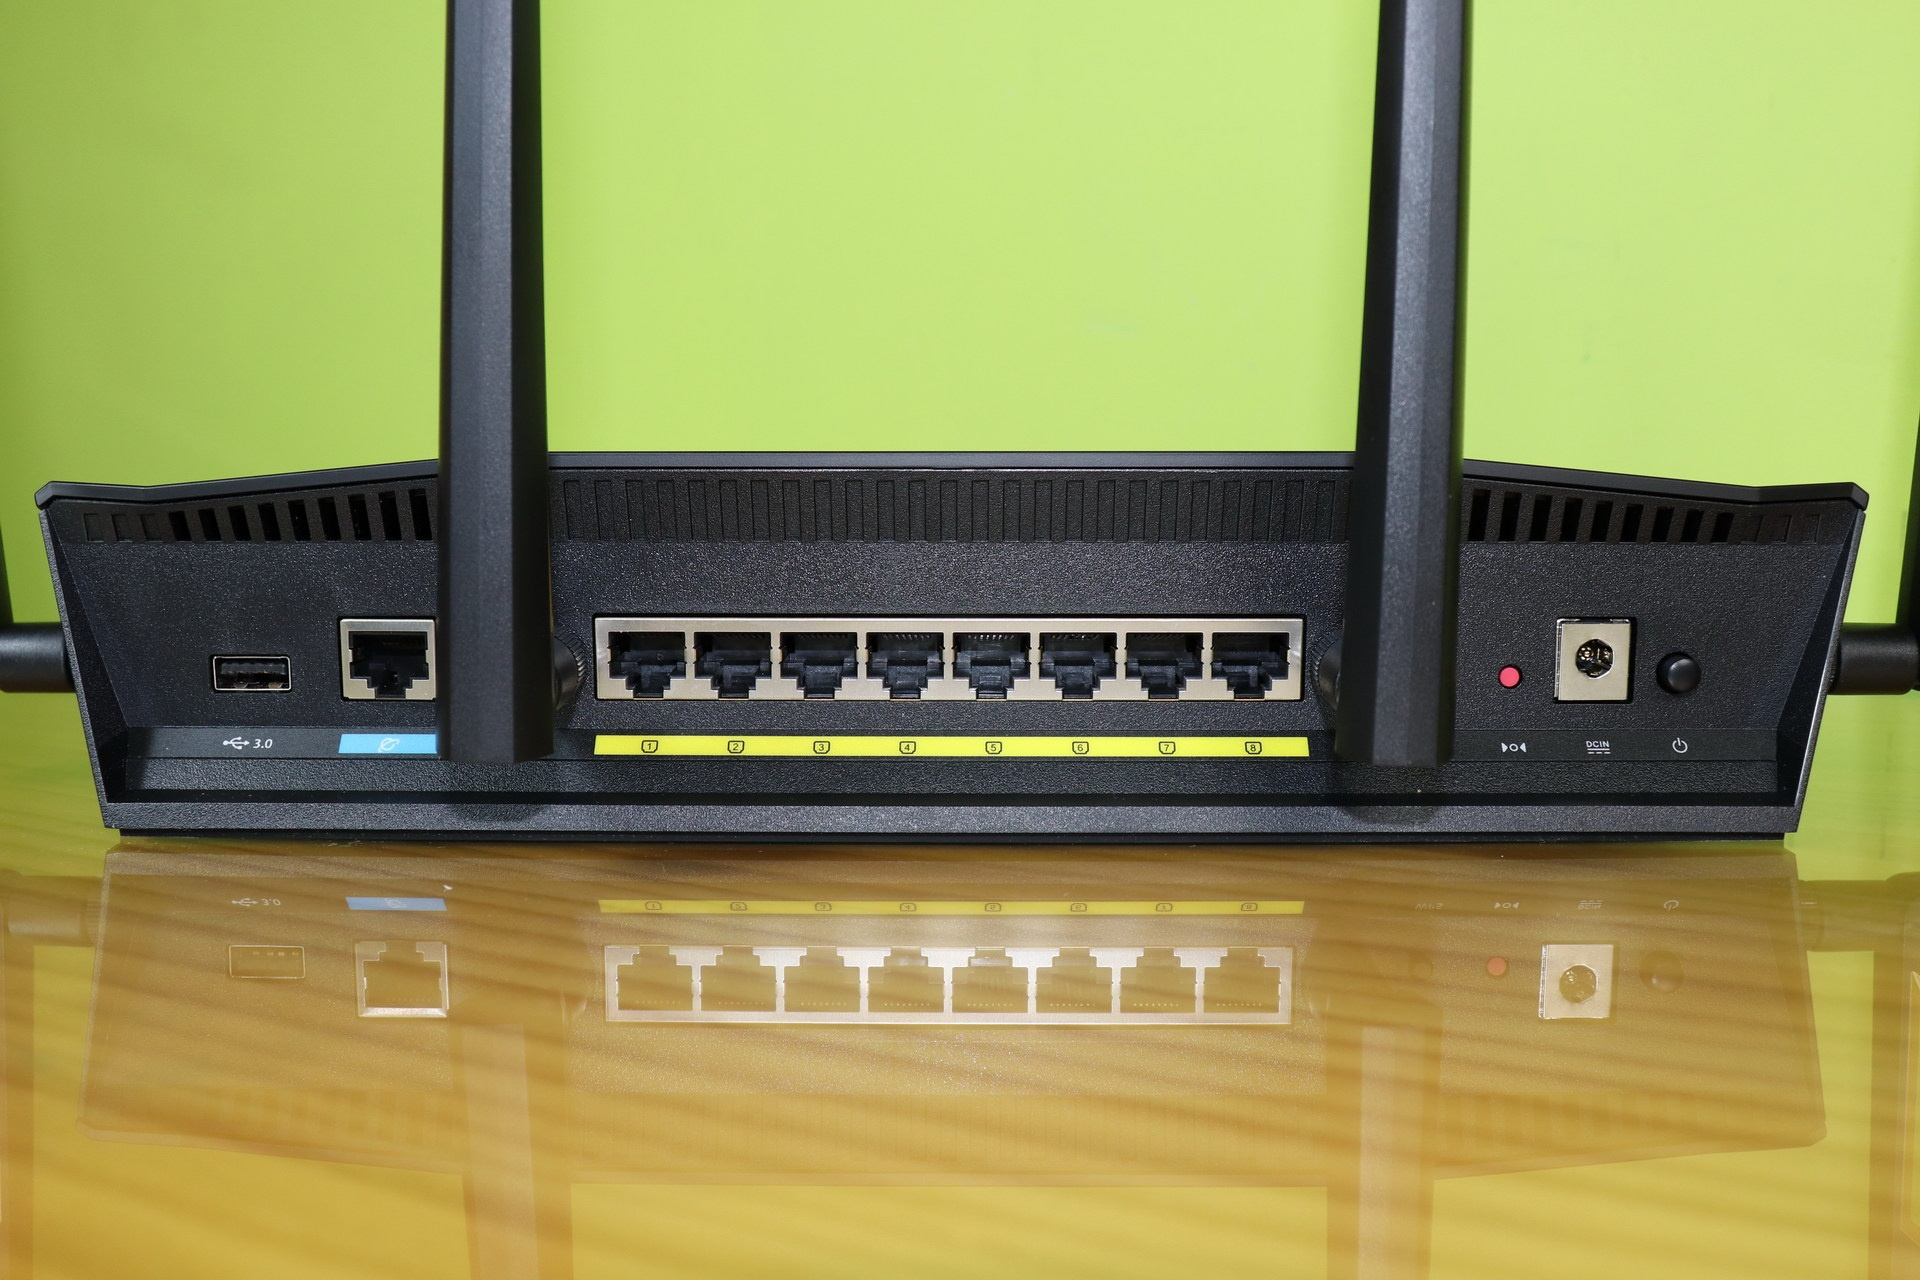 ASUS RT-AX88U Gigabit ports and connections